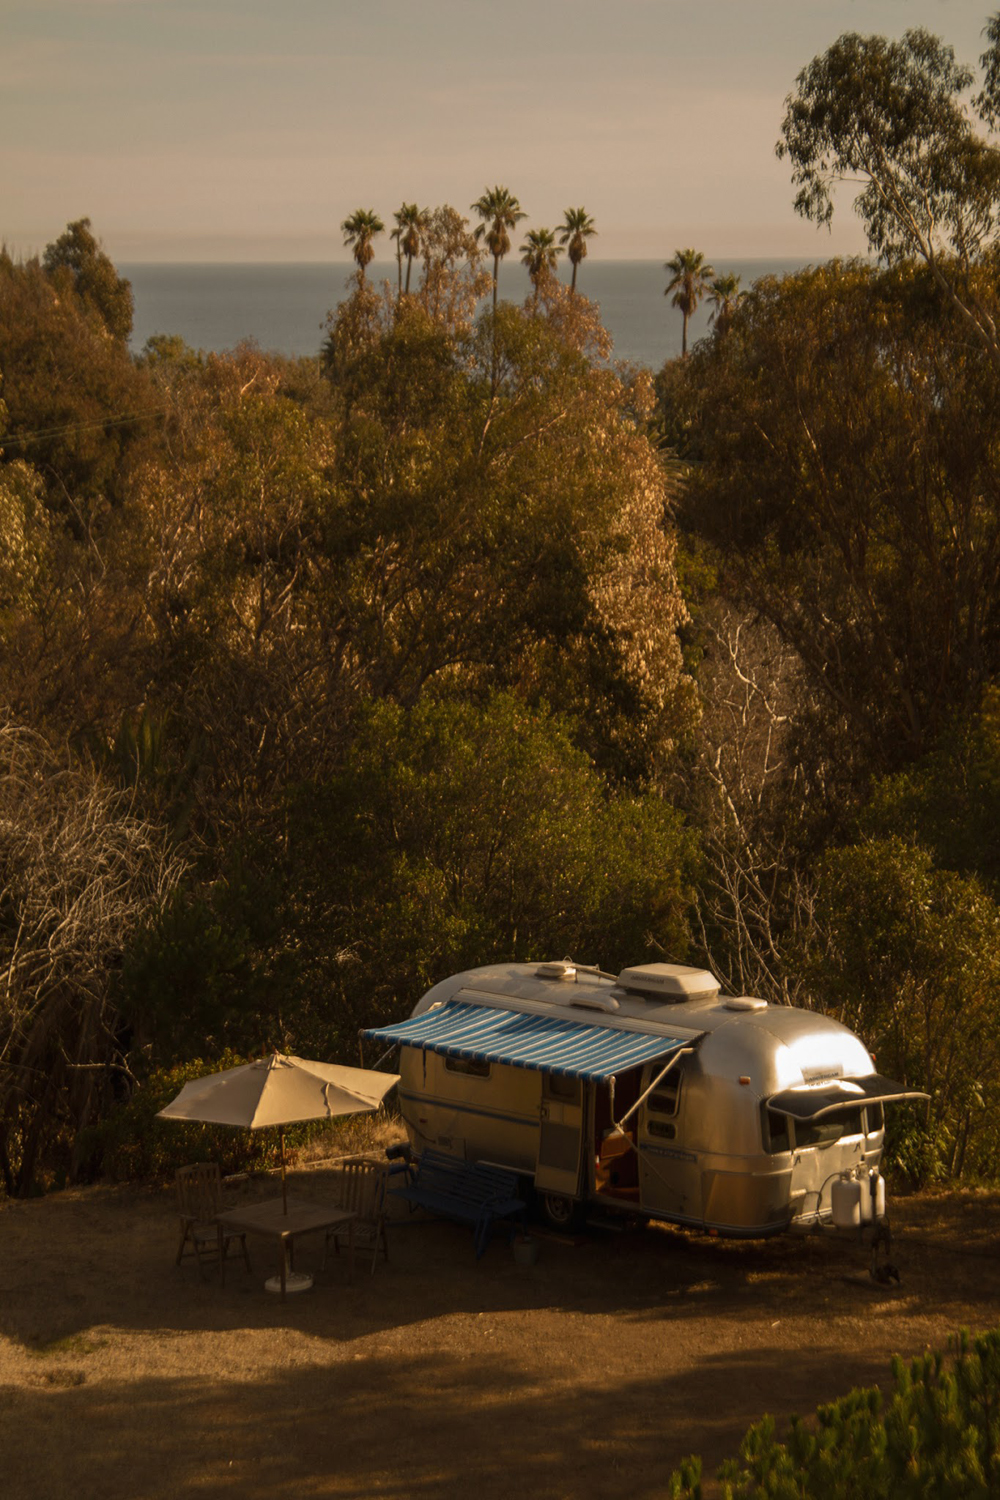 Wasim Muklashy Photography_Malibu_California_Airstream_02.jpg